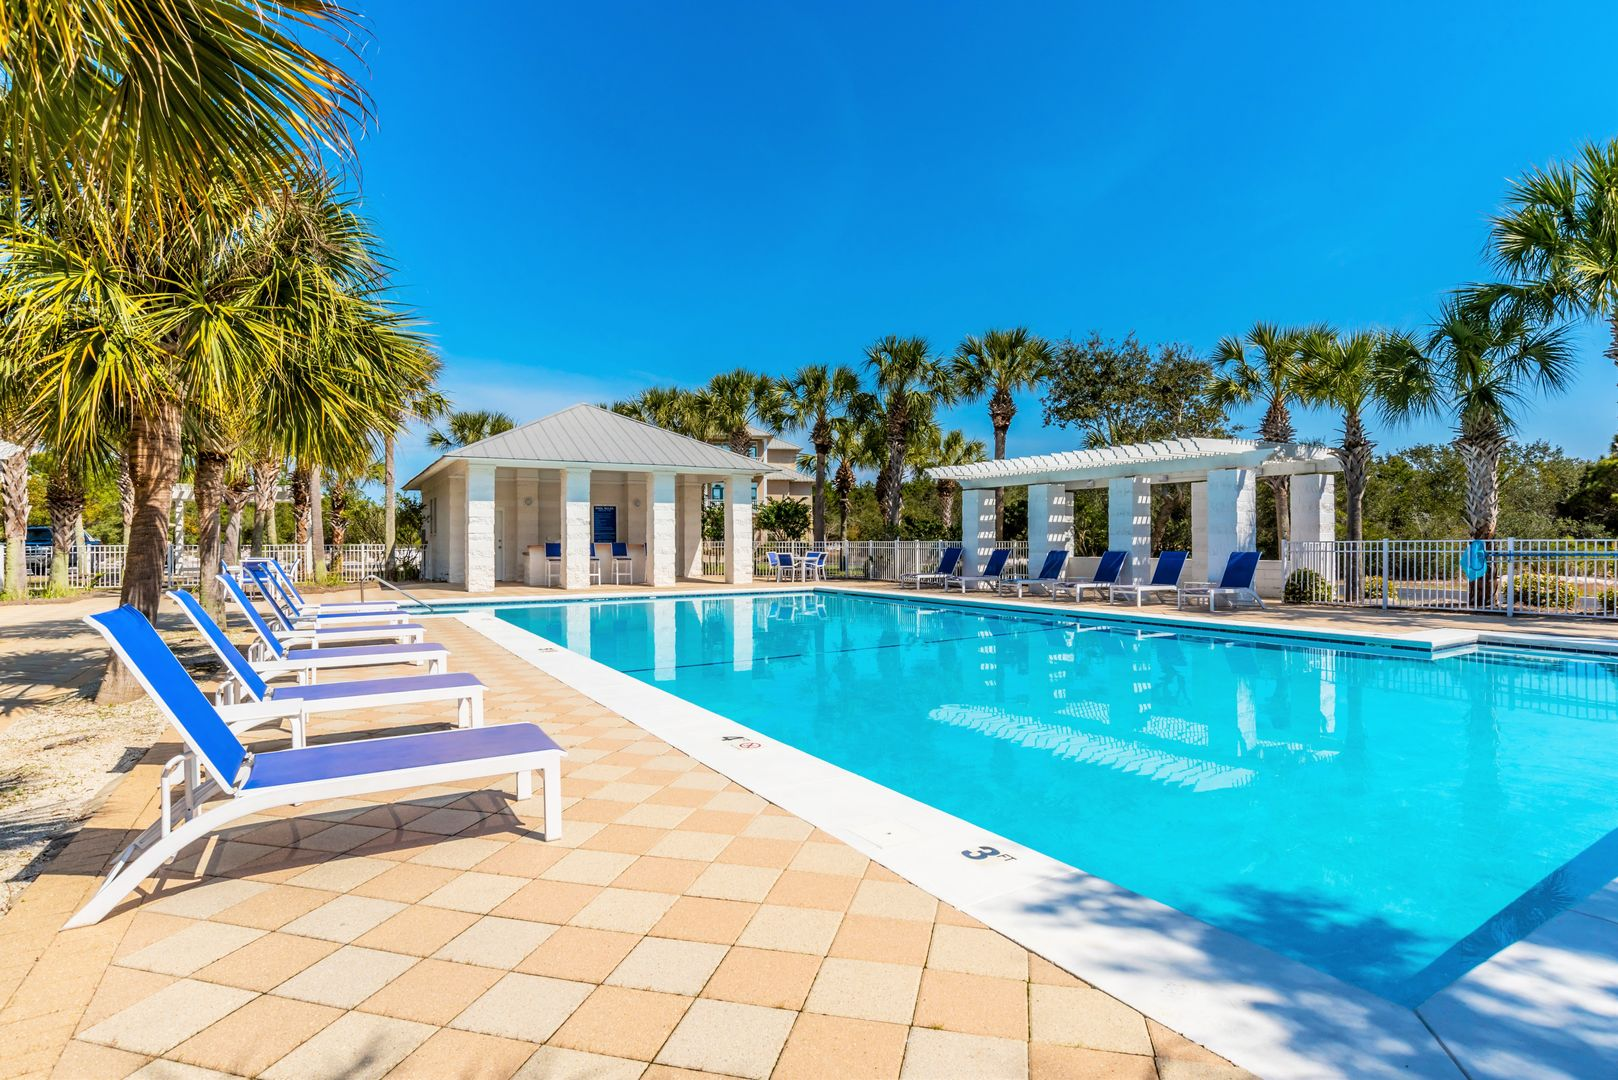 A Photo of Lounge Chairs and Large Pool.